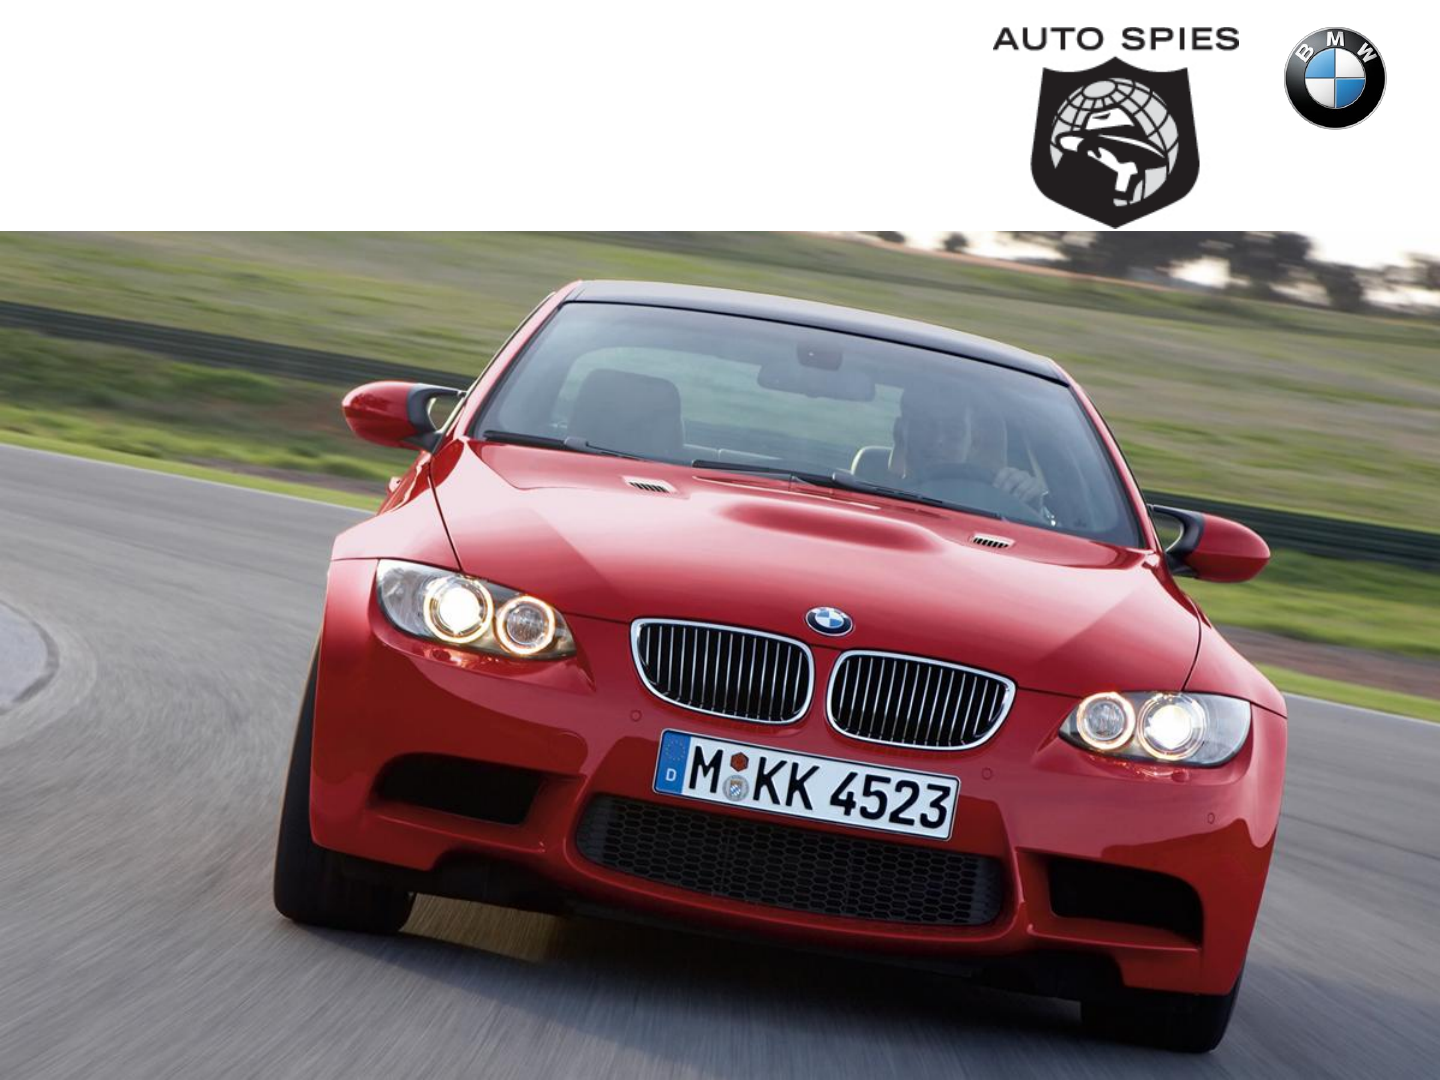 The New Bmw M3 Coupe International Media M3 The New Bmw M3 Coupe Committed By 20 Years Pdf Document